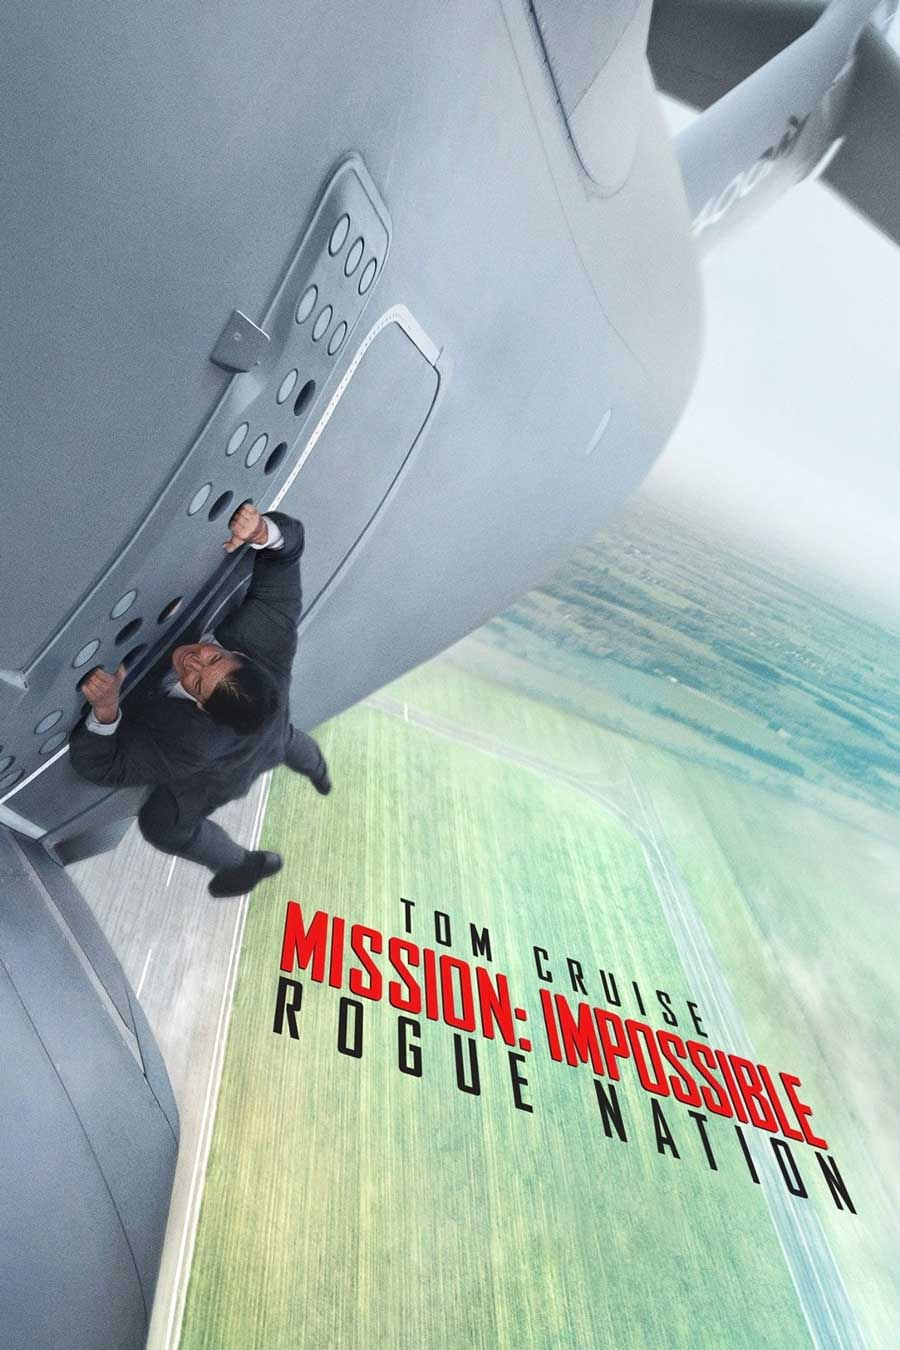 Poster for Mission: Impossible Rogue Nation